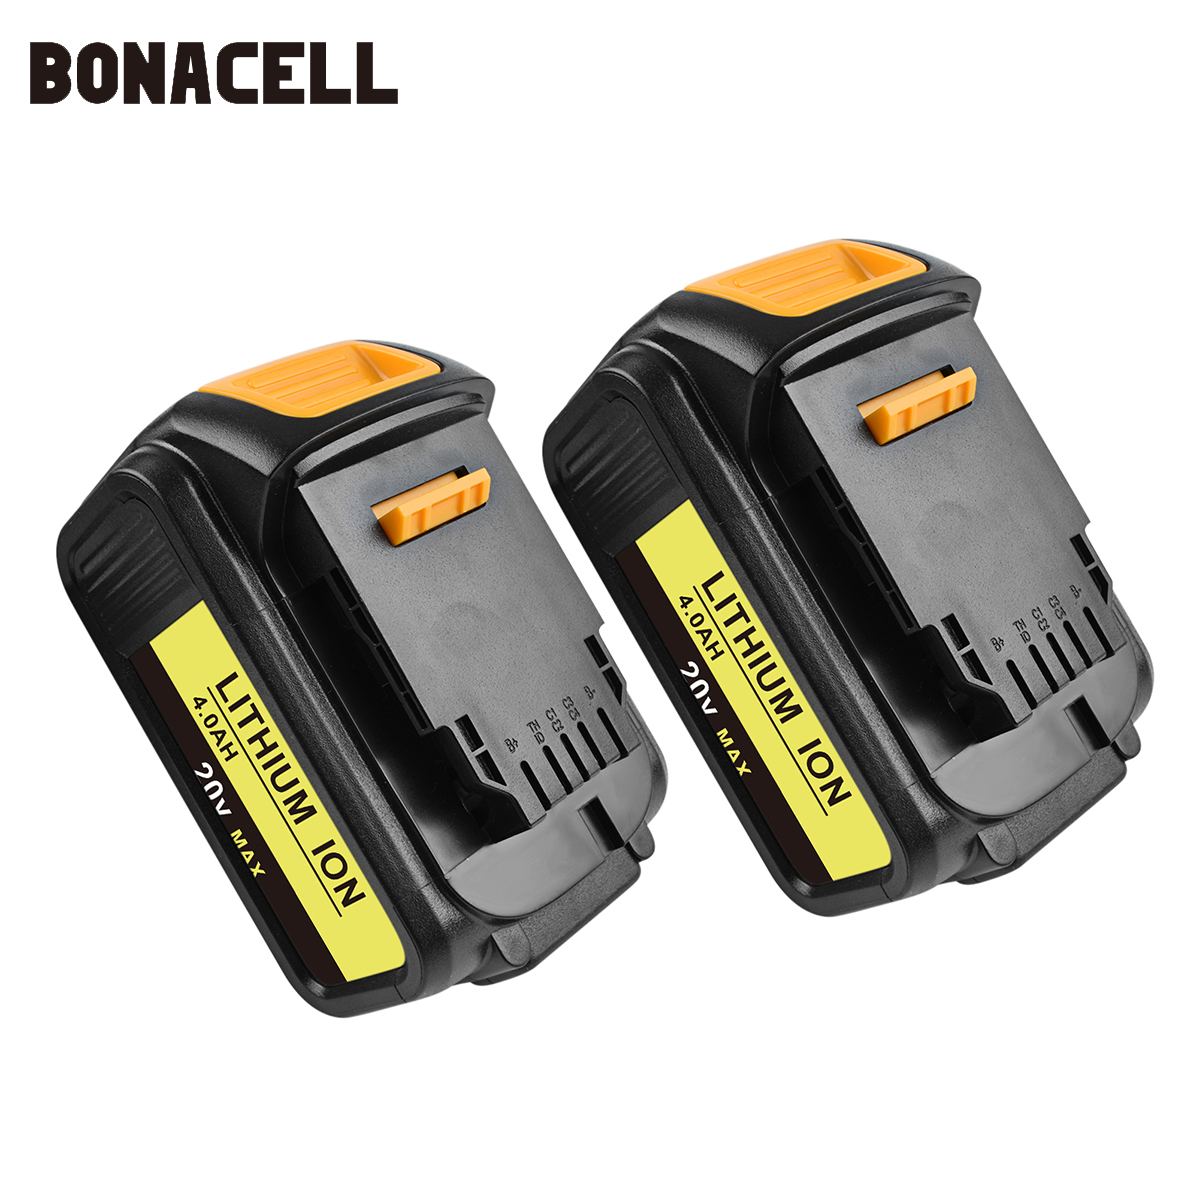 Bonacell 18V/20V Battery For Dewalt 4000mAh Replacement Battery For DCB200 DCB181 DCB182 DCB204-2  DCB201 DCB201-2 L50